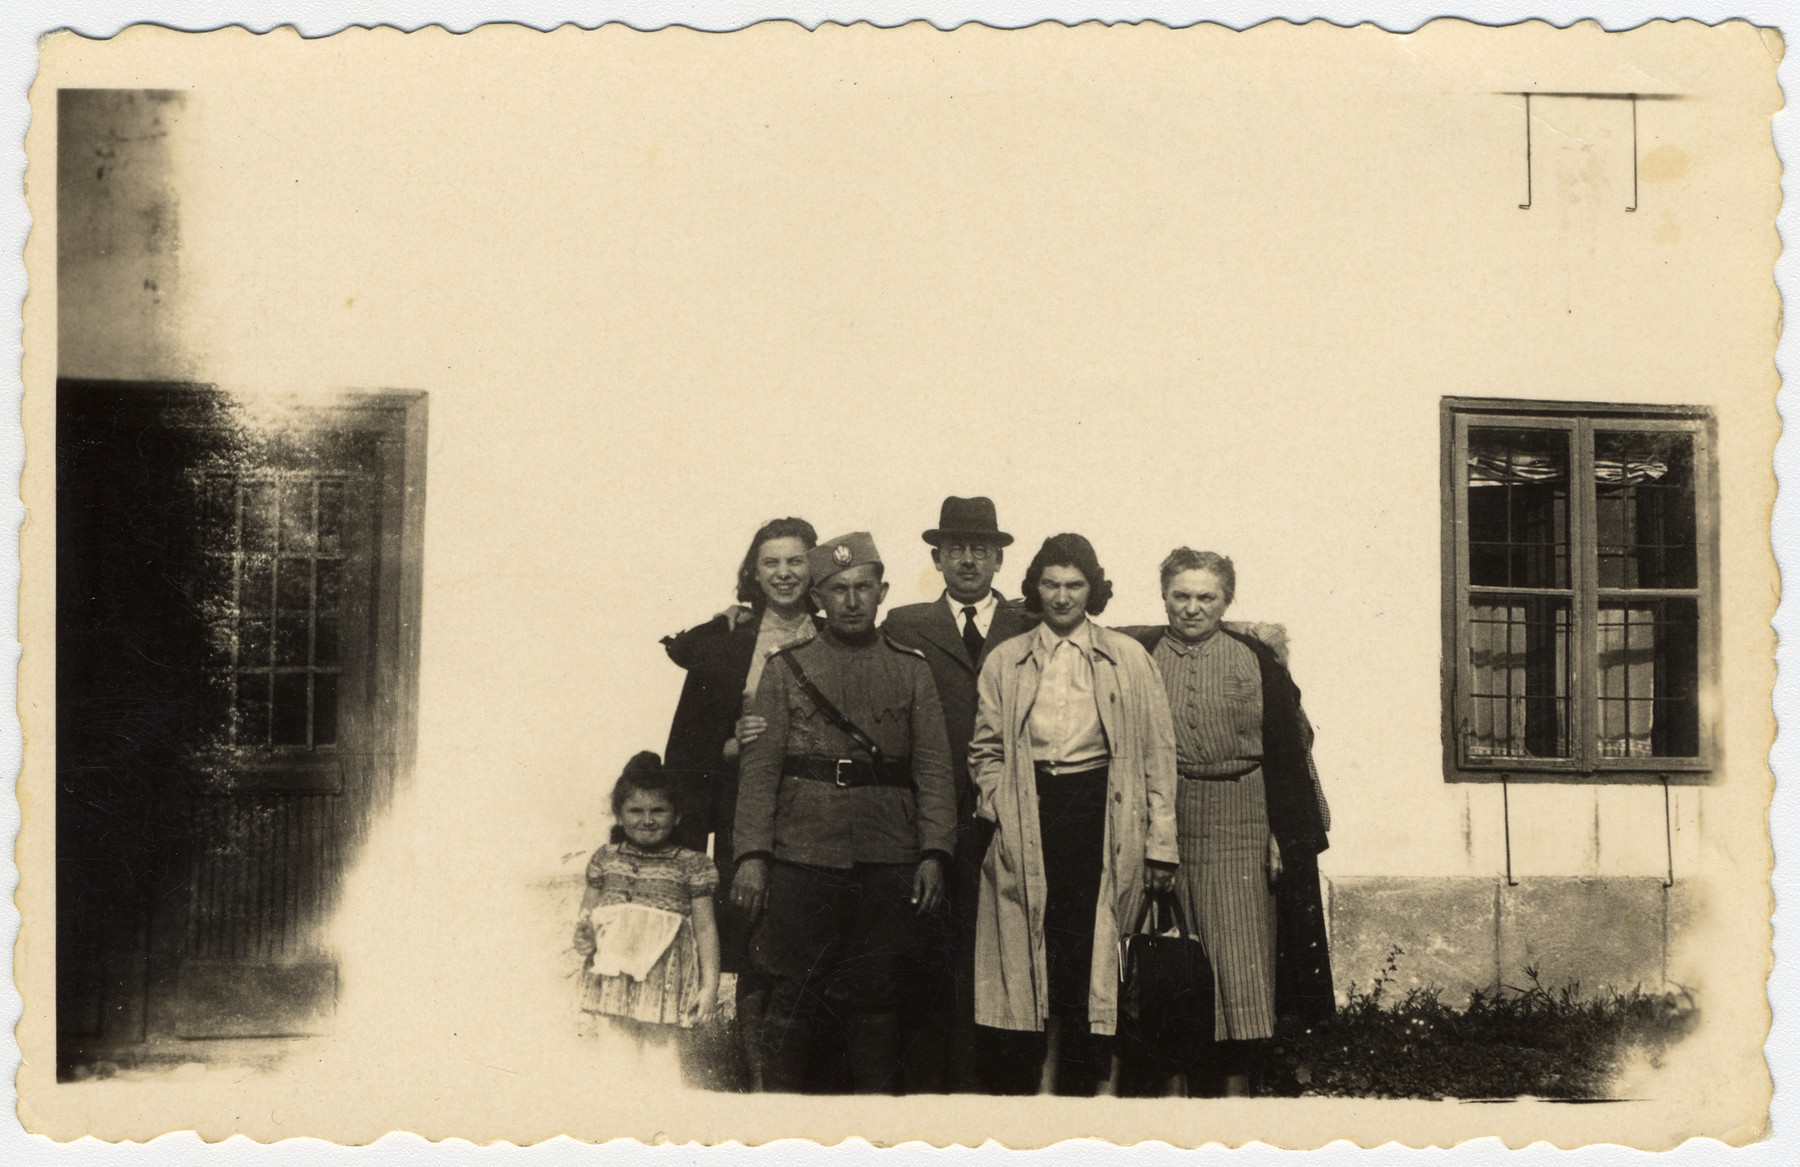 The Willer poses together about a year prior to the invasion of Yugoslavia.  Pictured from left to right are Rina Willer, Claudia Juhn, Andor Willer (wearing army uniform), Benjamin Schlesinger, Marta Willer and Elsa Schlesinger.